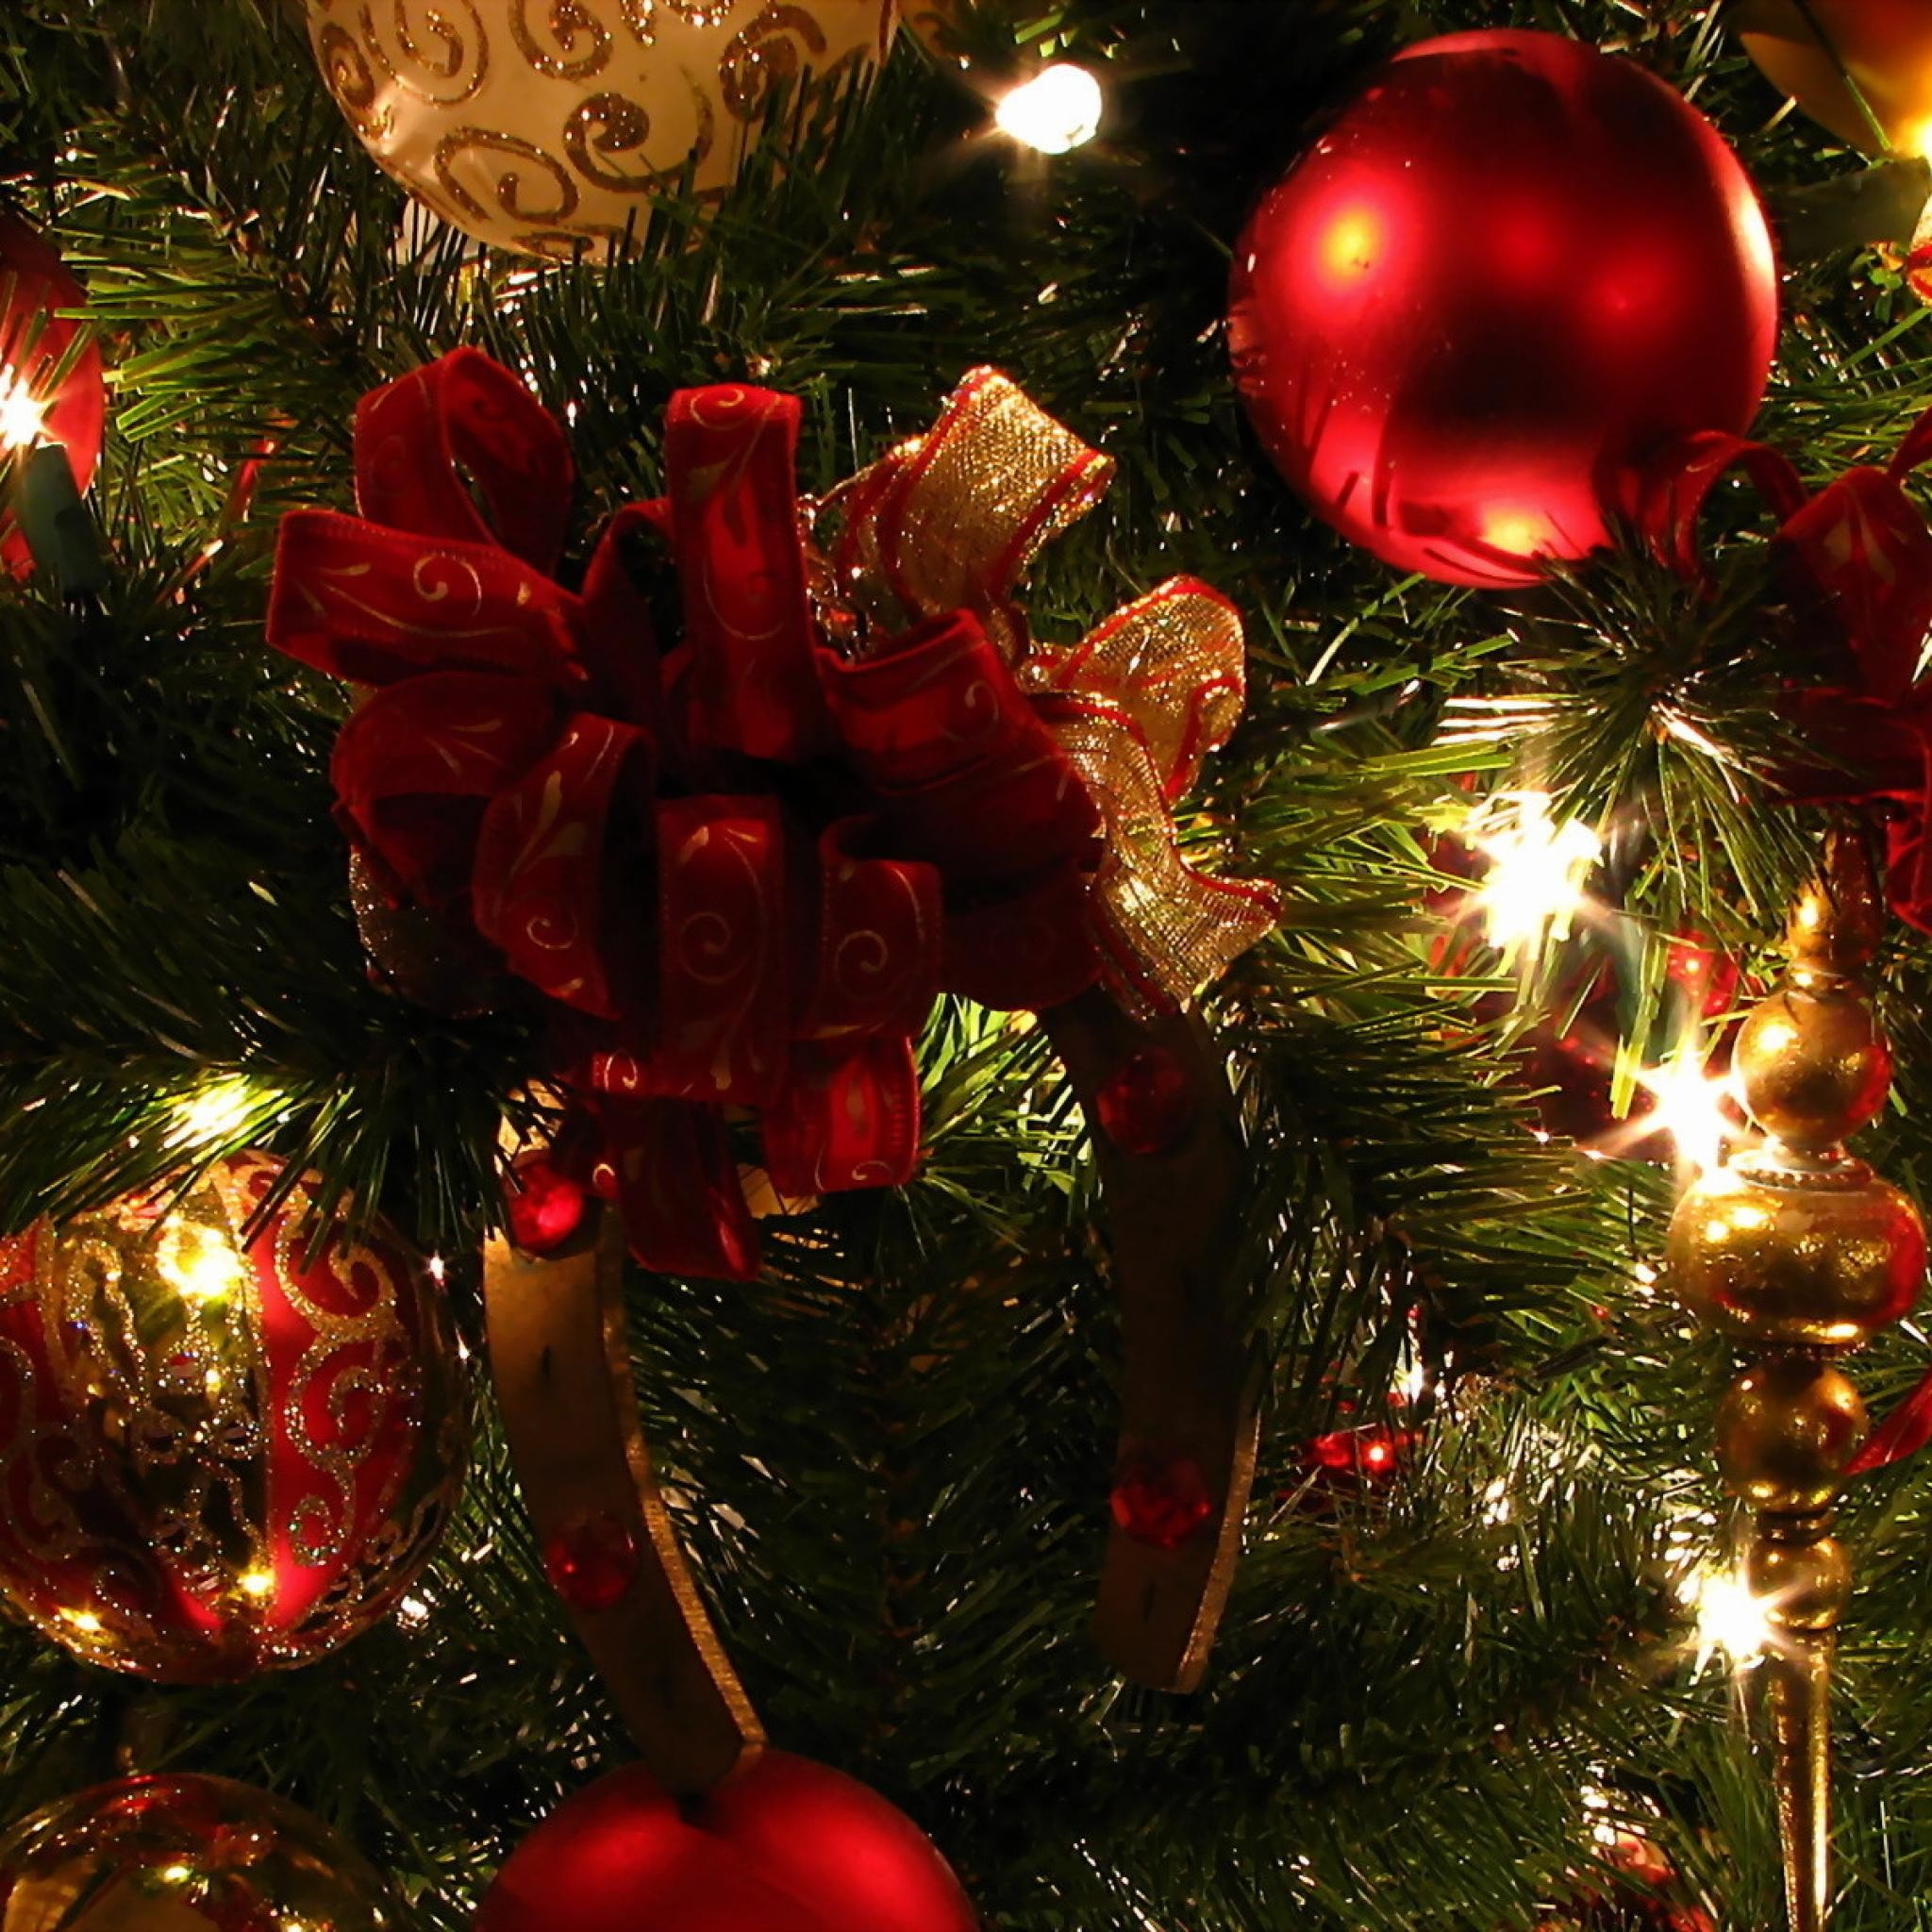 Live Christmas Wallpaper For Ipad 59 Images